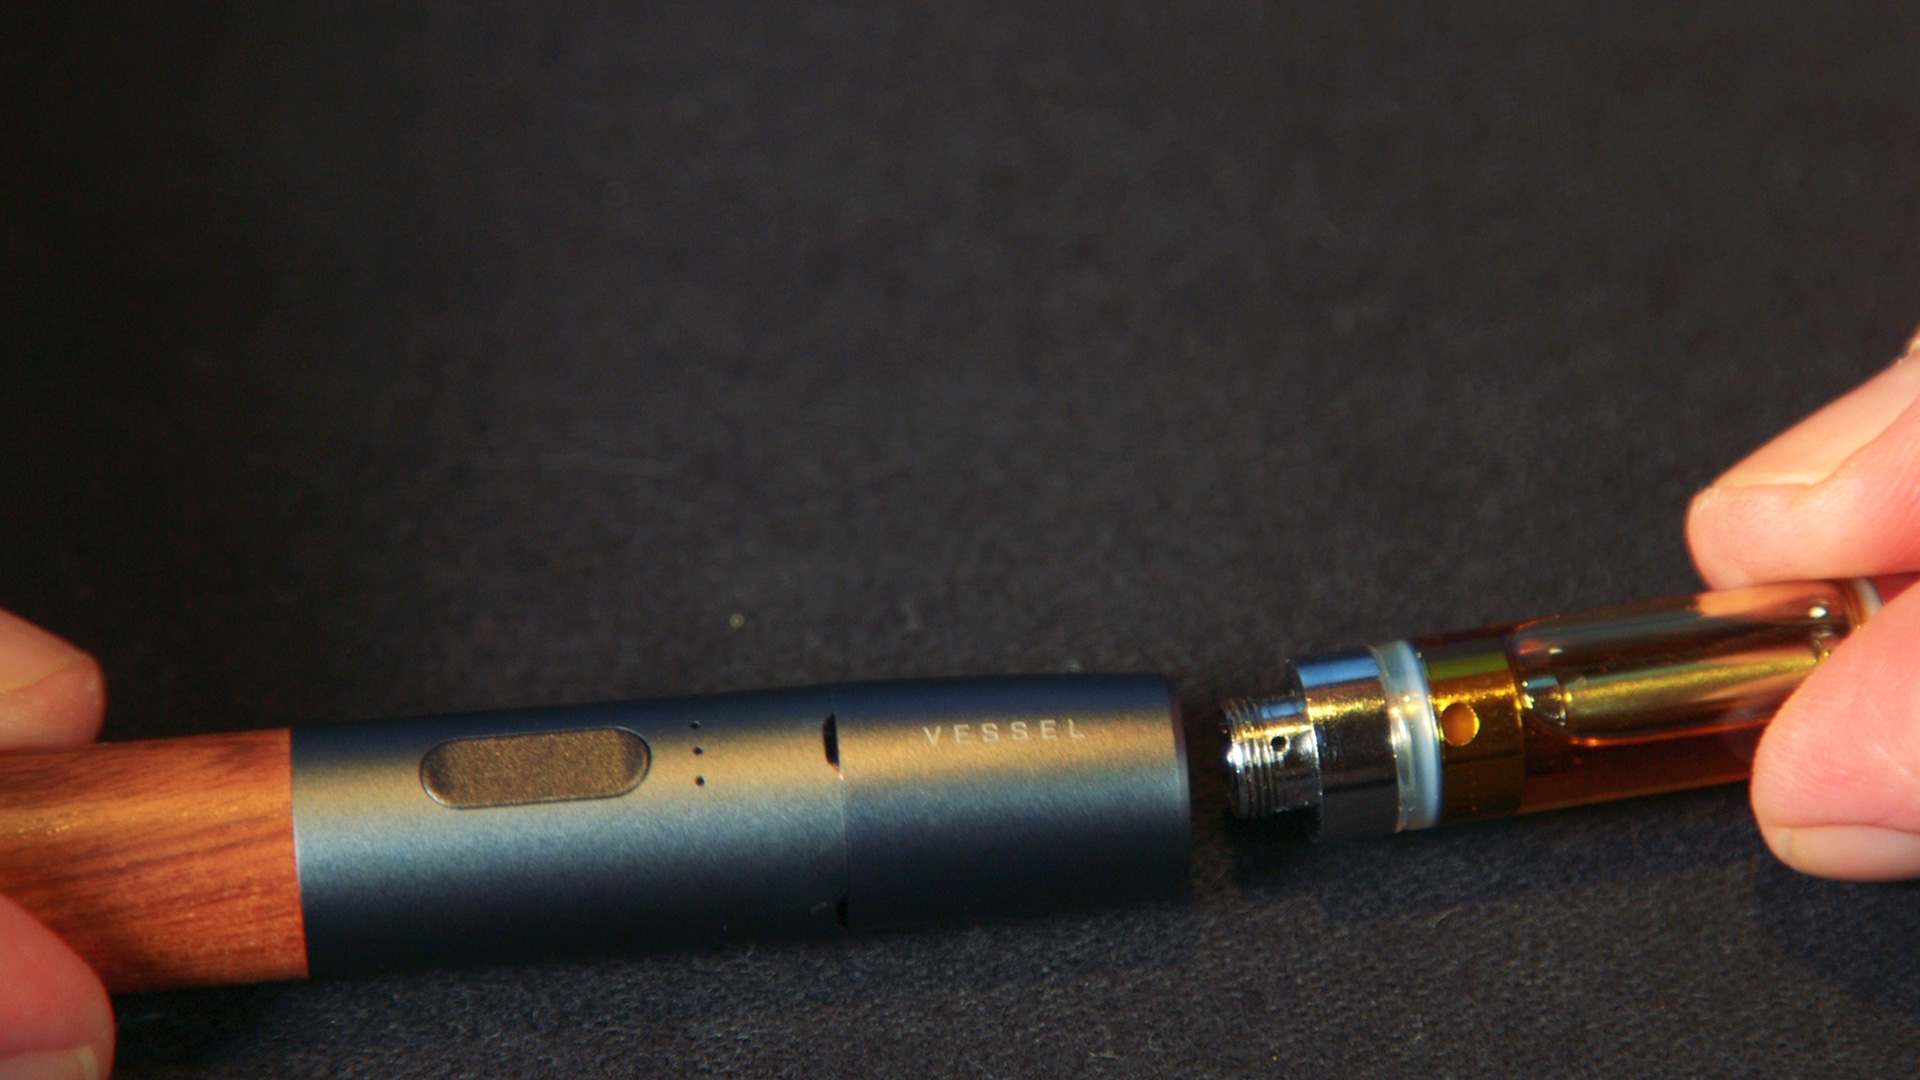 vessel-510-thread-cartridge-vaporizer-battery-review-thumbnail-1